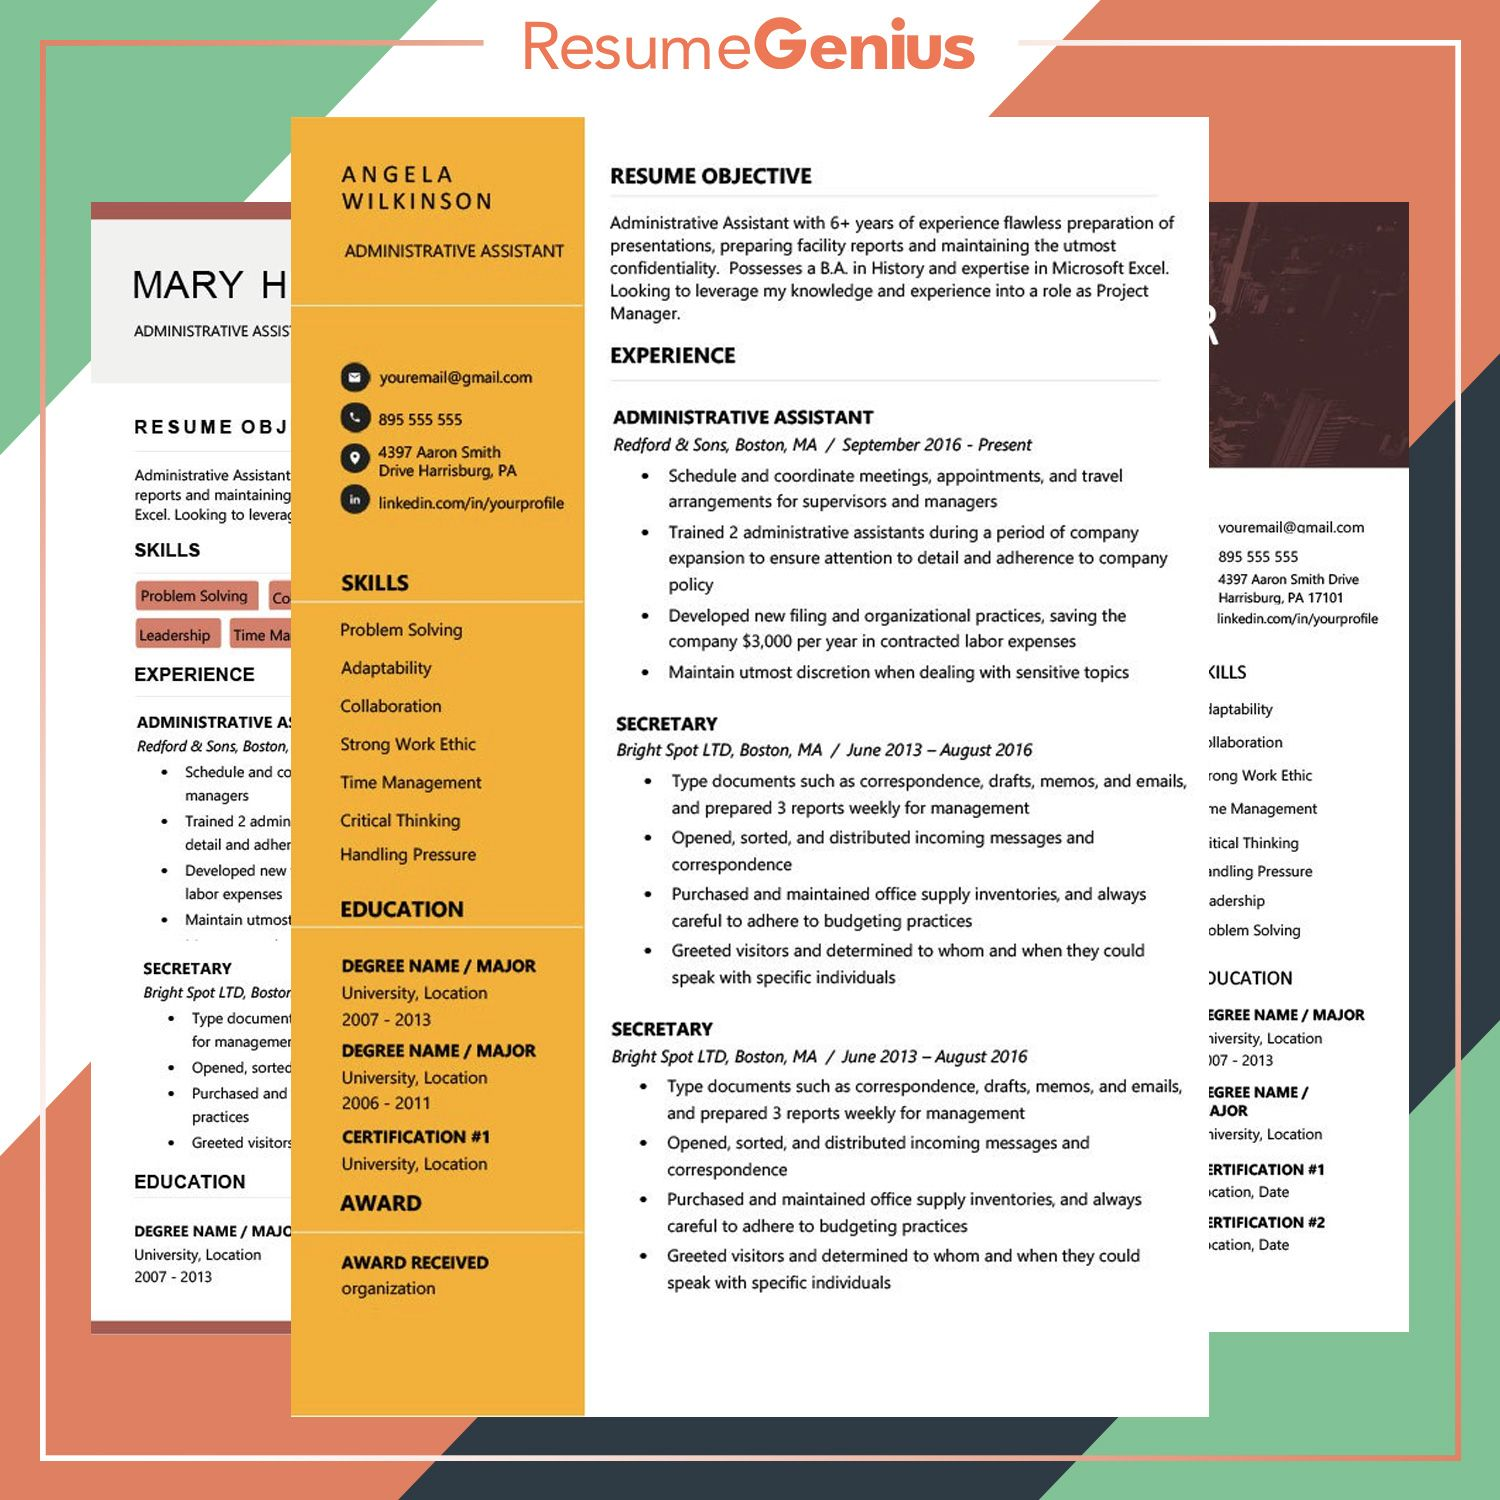 """Howto"" Resume Genius image by Resume Genius Resume"